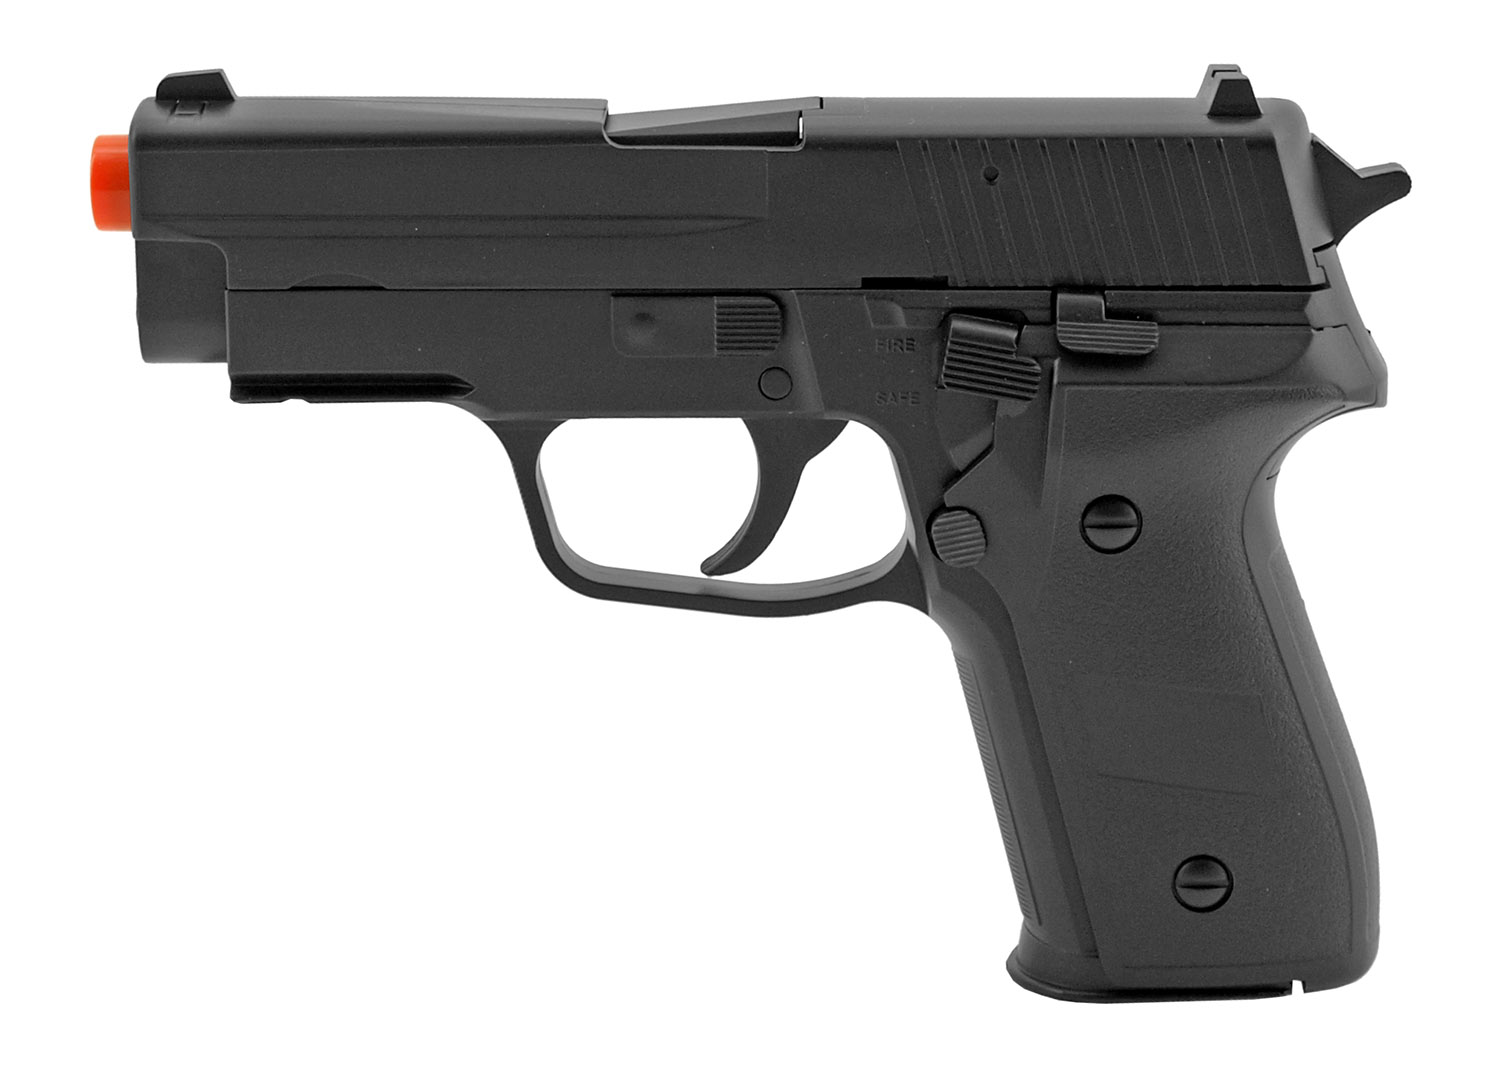 M26 Lock Back Slide Spring Powered US Military Issue Sidearm Airsoft Pistol - Double Eagle